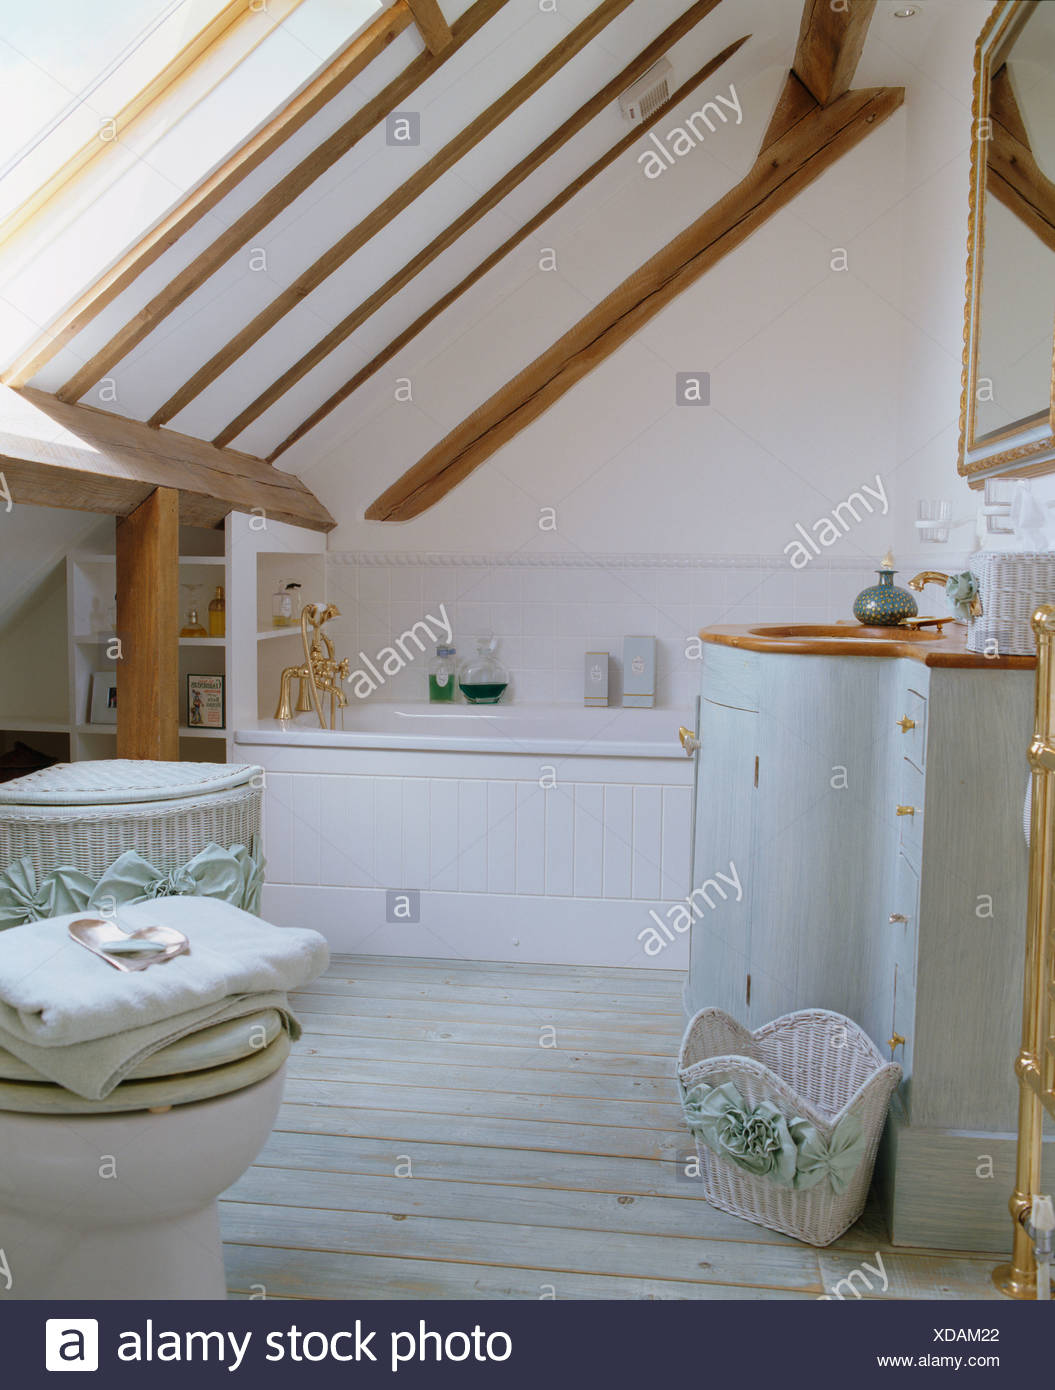 Beamed, sloping ceiling in loft conversion bathroom with curved ...